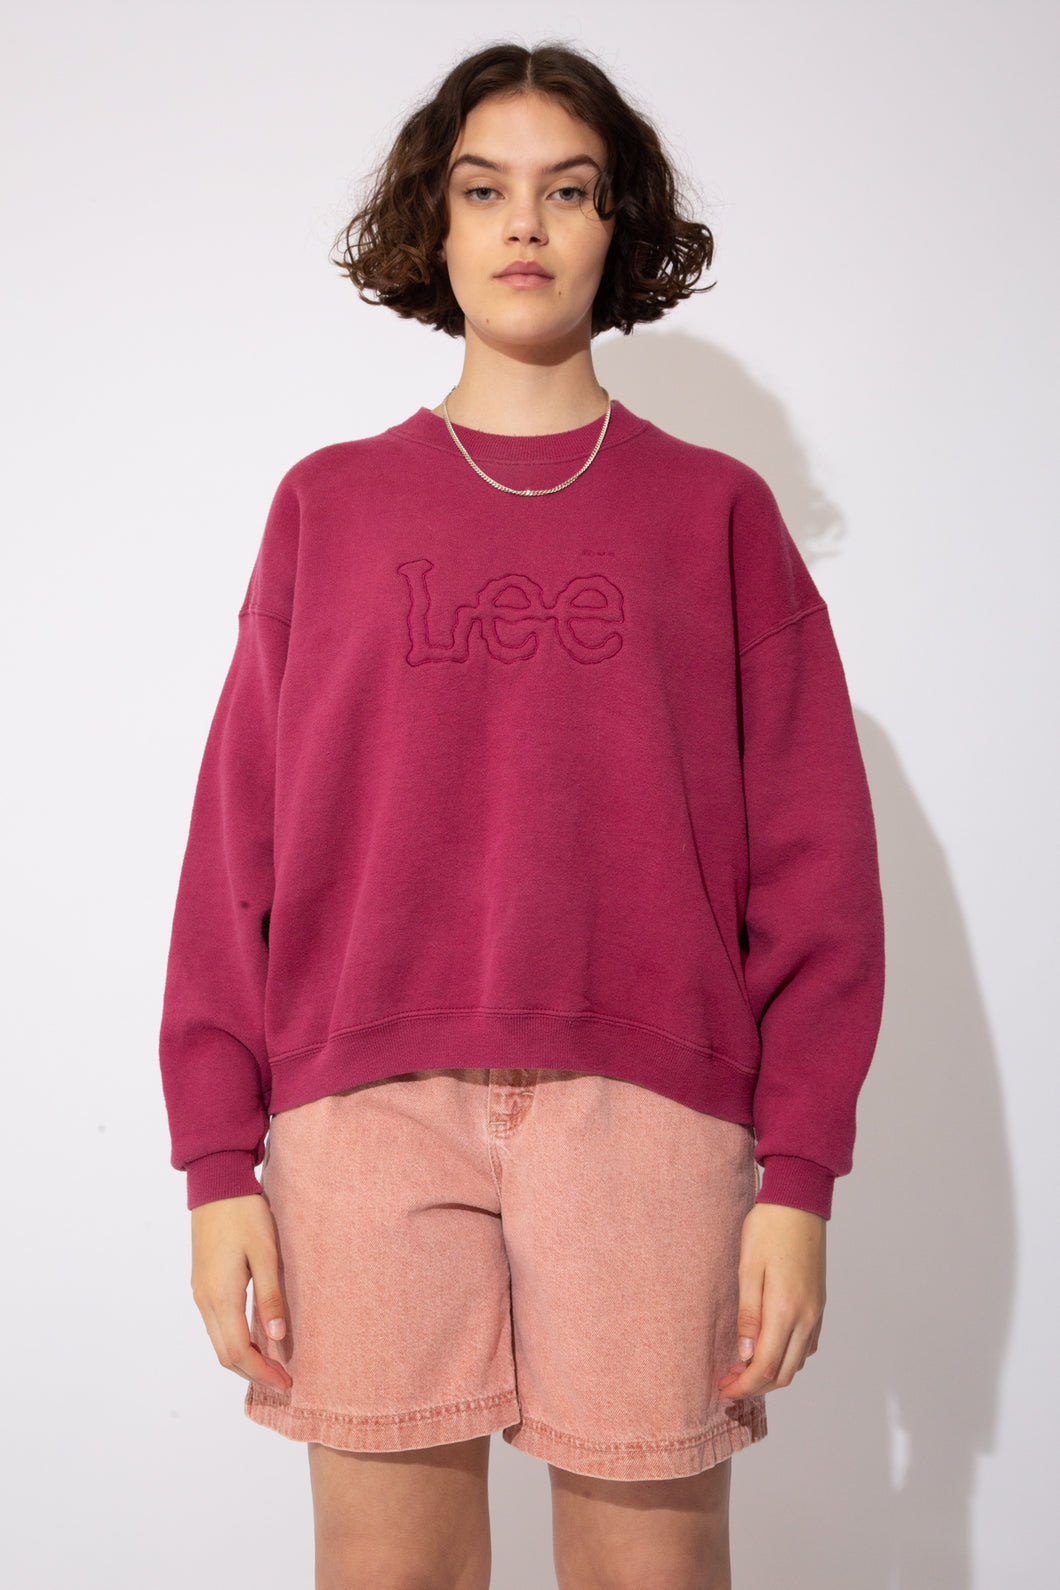 Maroon sweater with 'Lee' outlined and embroidered into the material across the chest. Ribbed neckline, waistline and sleeves add to baggy fit!